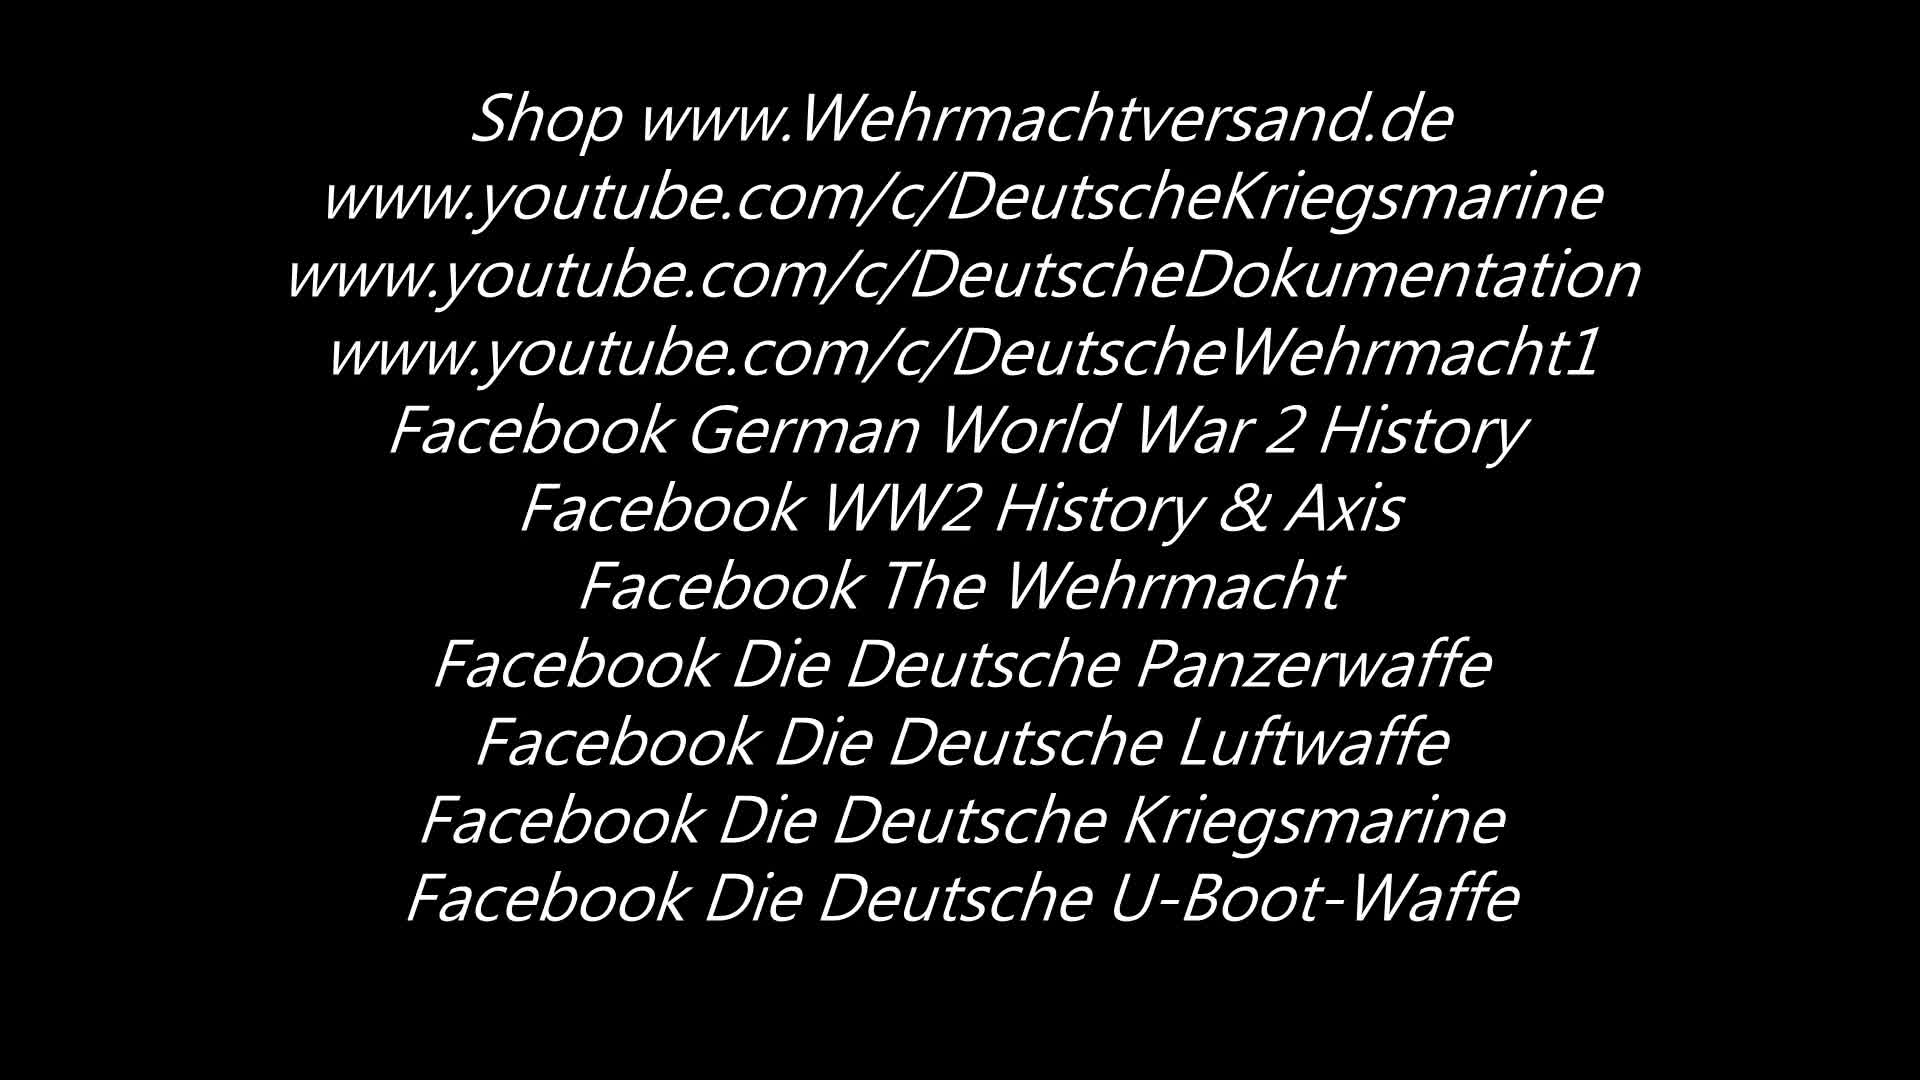 Wehrmacht Victory Parade in Berlin 1940 after Western Campaign